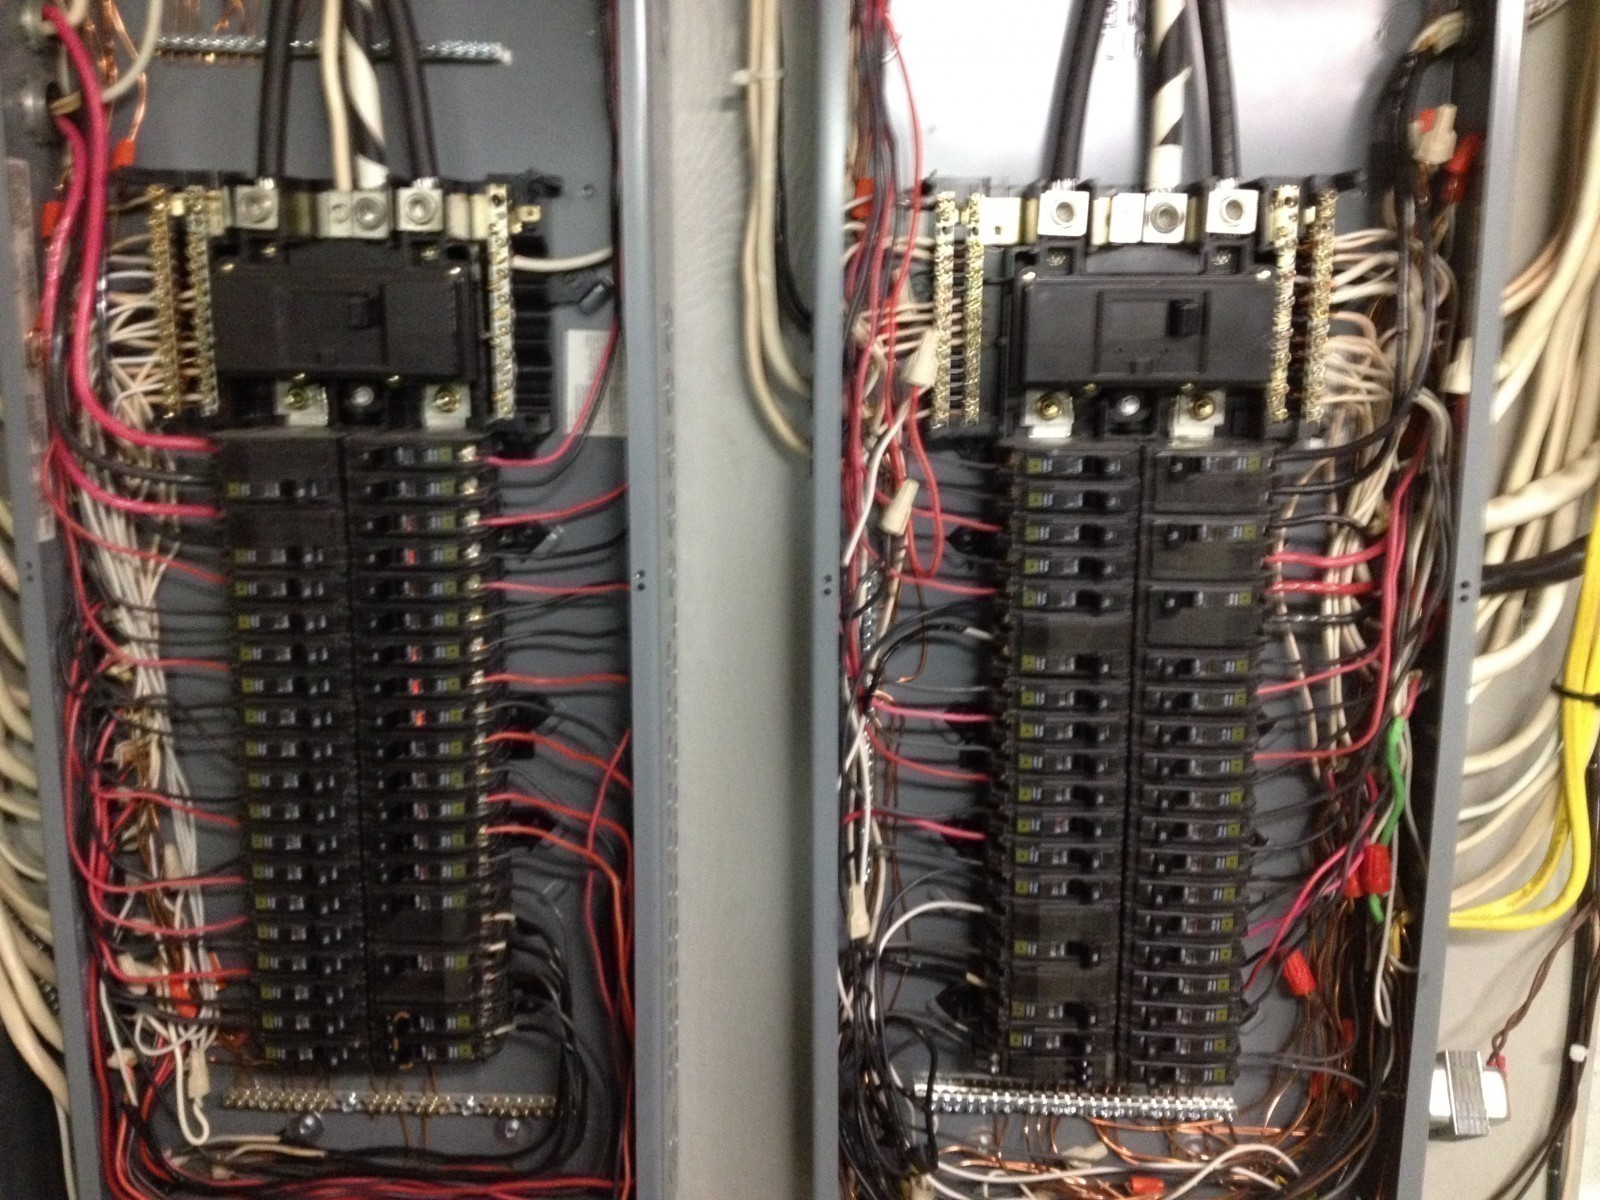 Modern Electrical Fuse Box : Electrical panel service upgrades in montclair nj